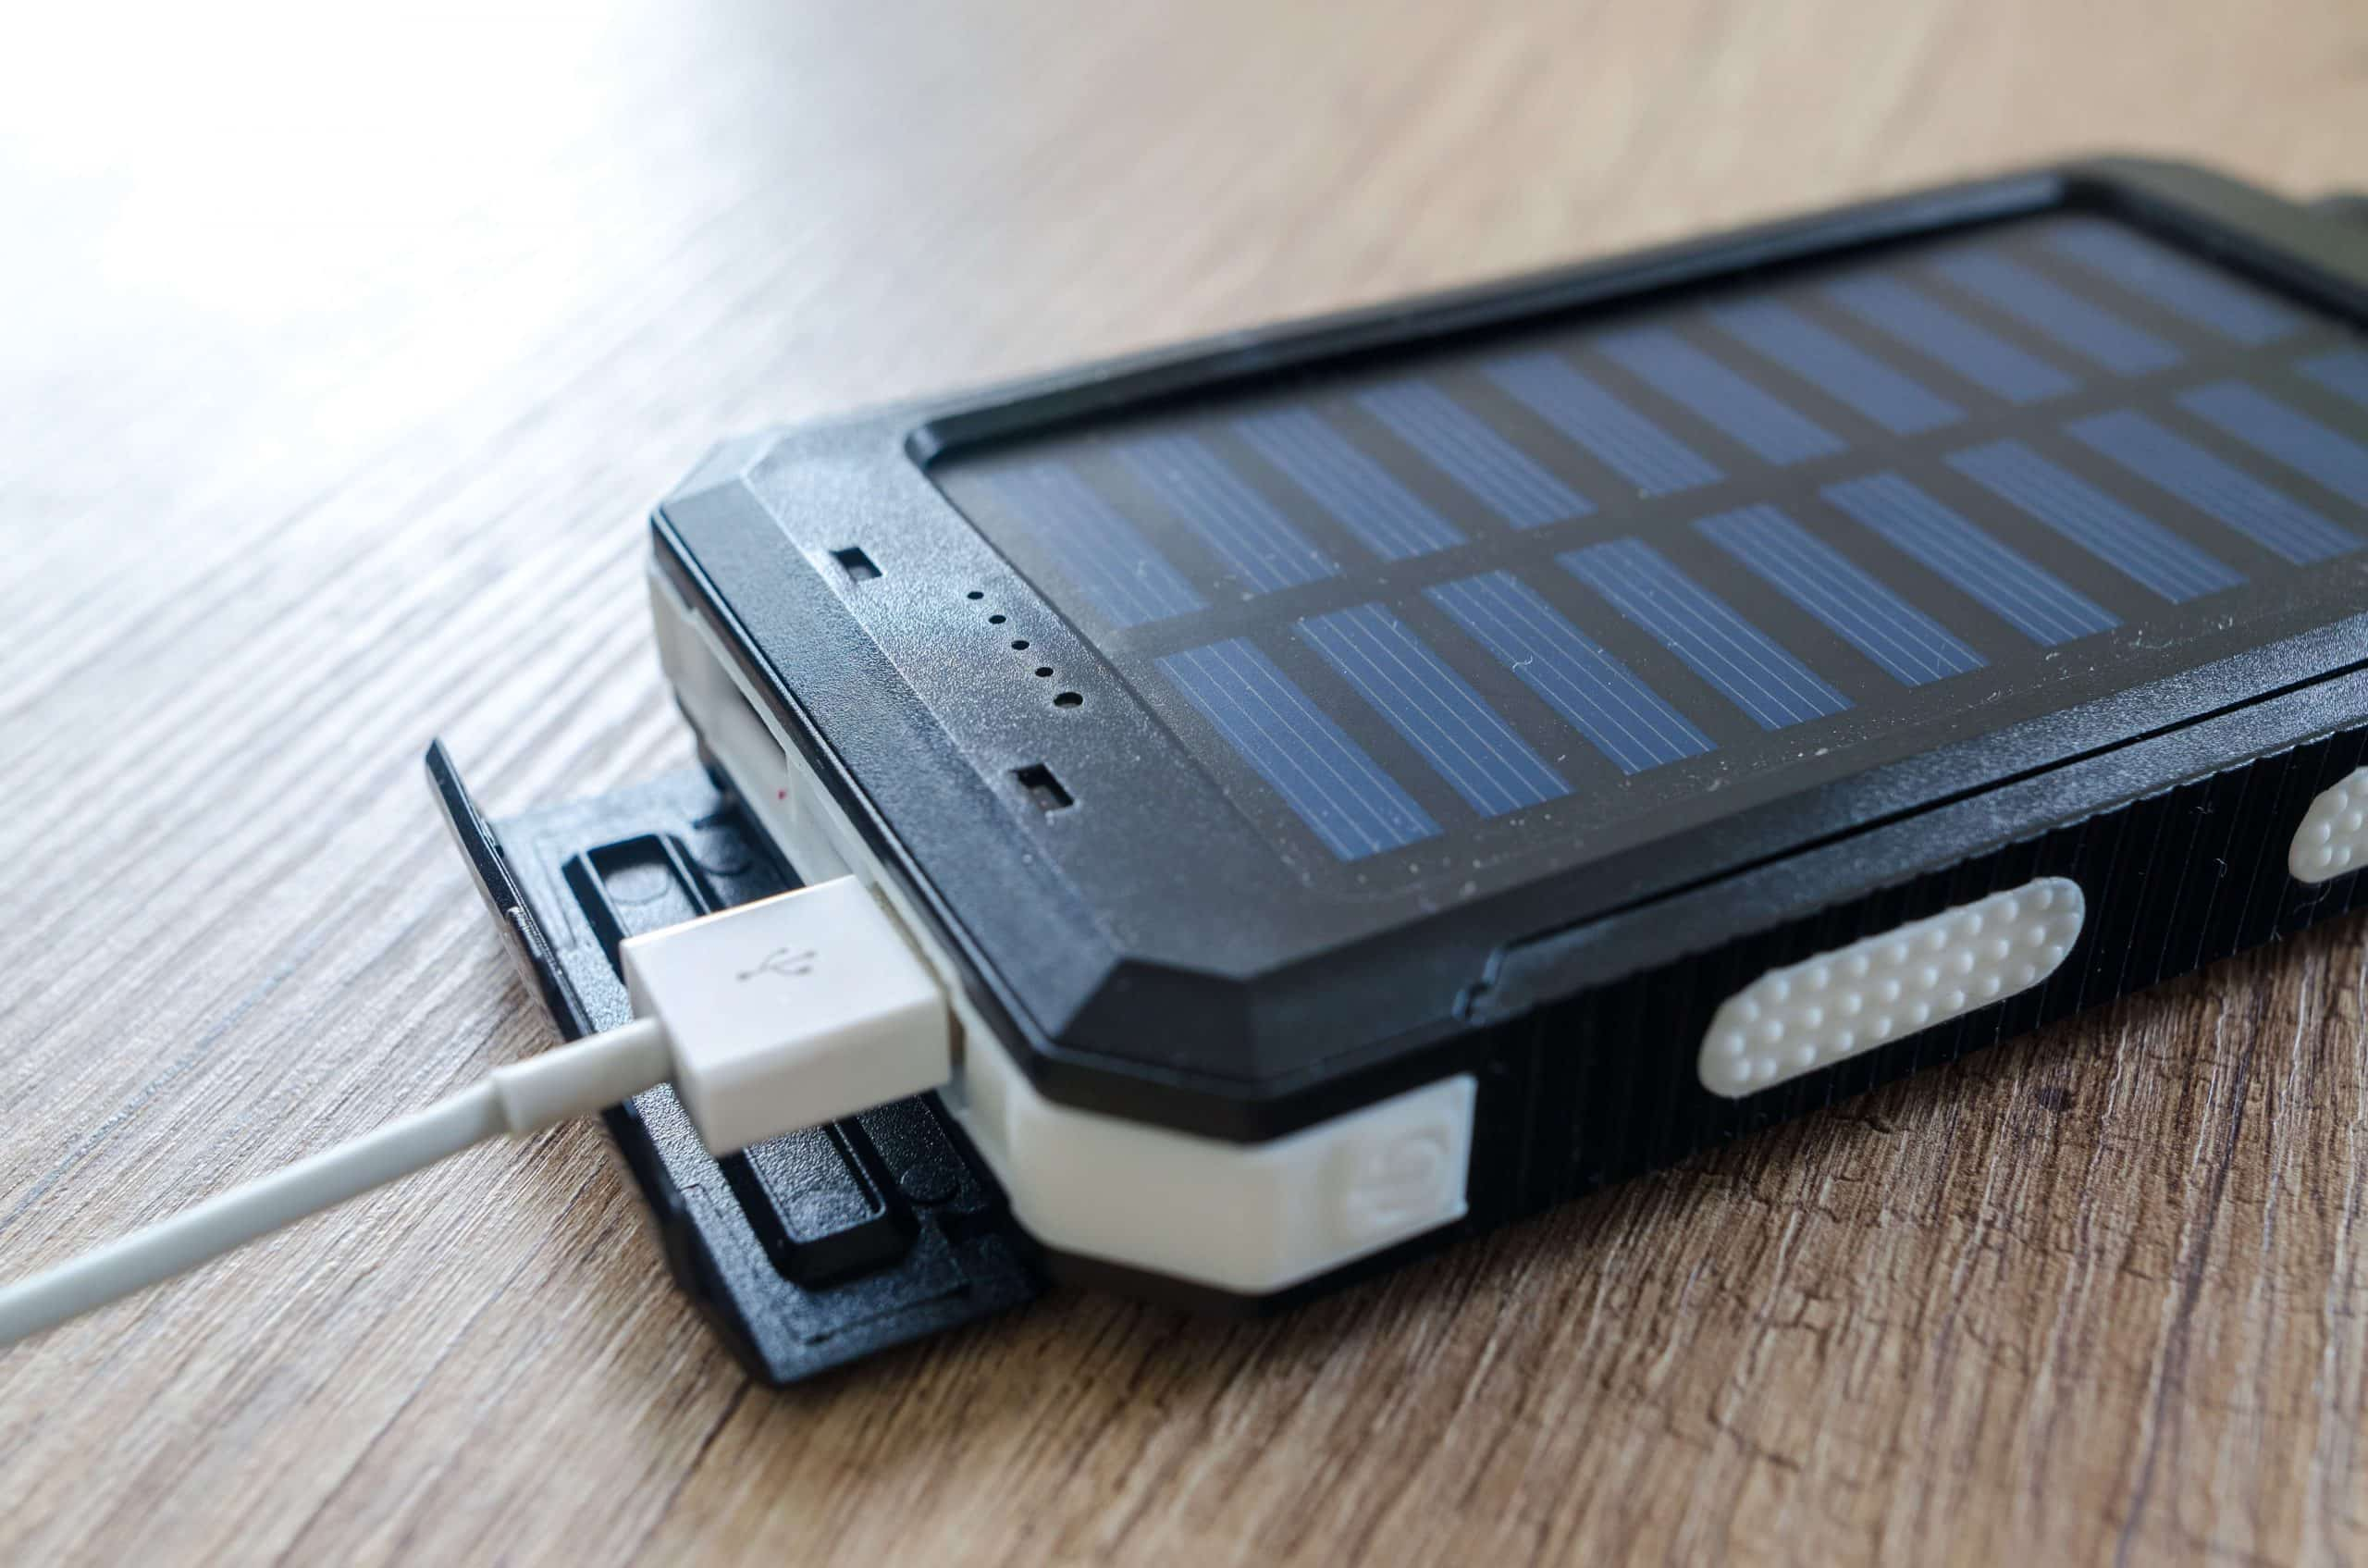 Black Colored Portable Solar Power Bank Charger for Smartphone with White Cable